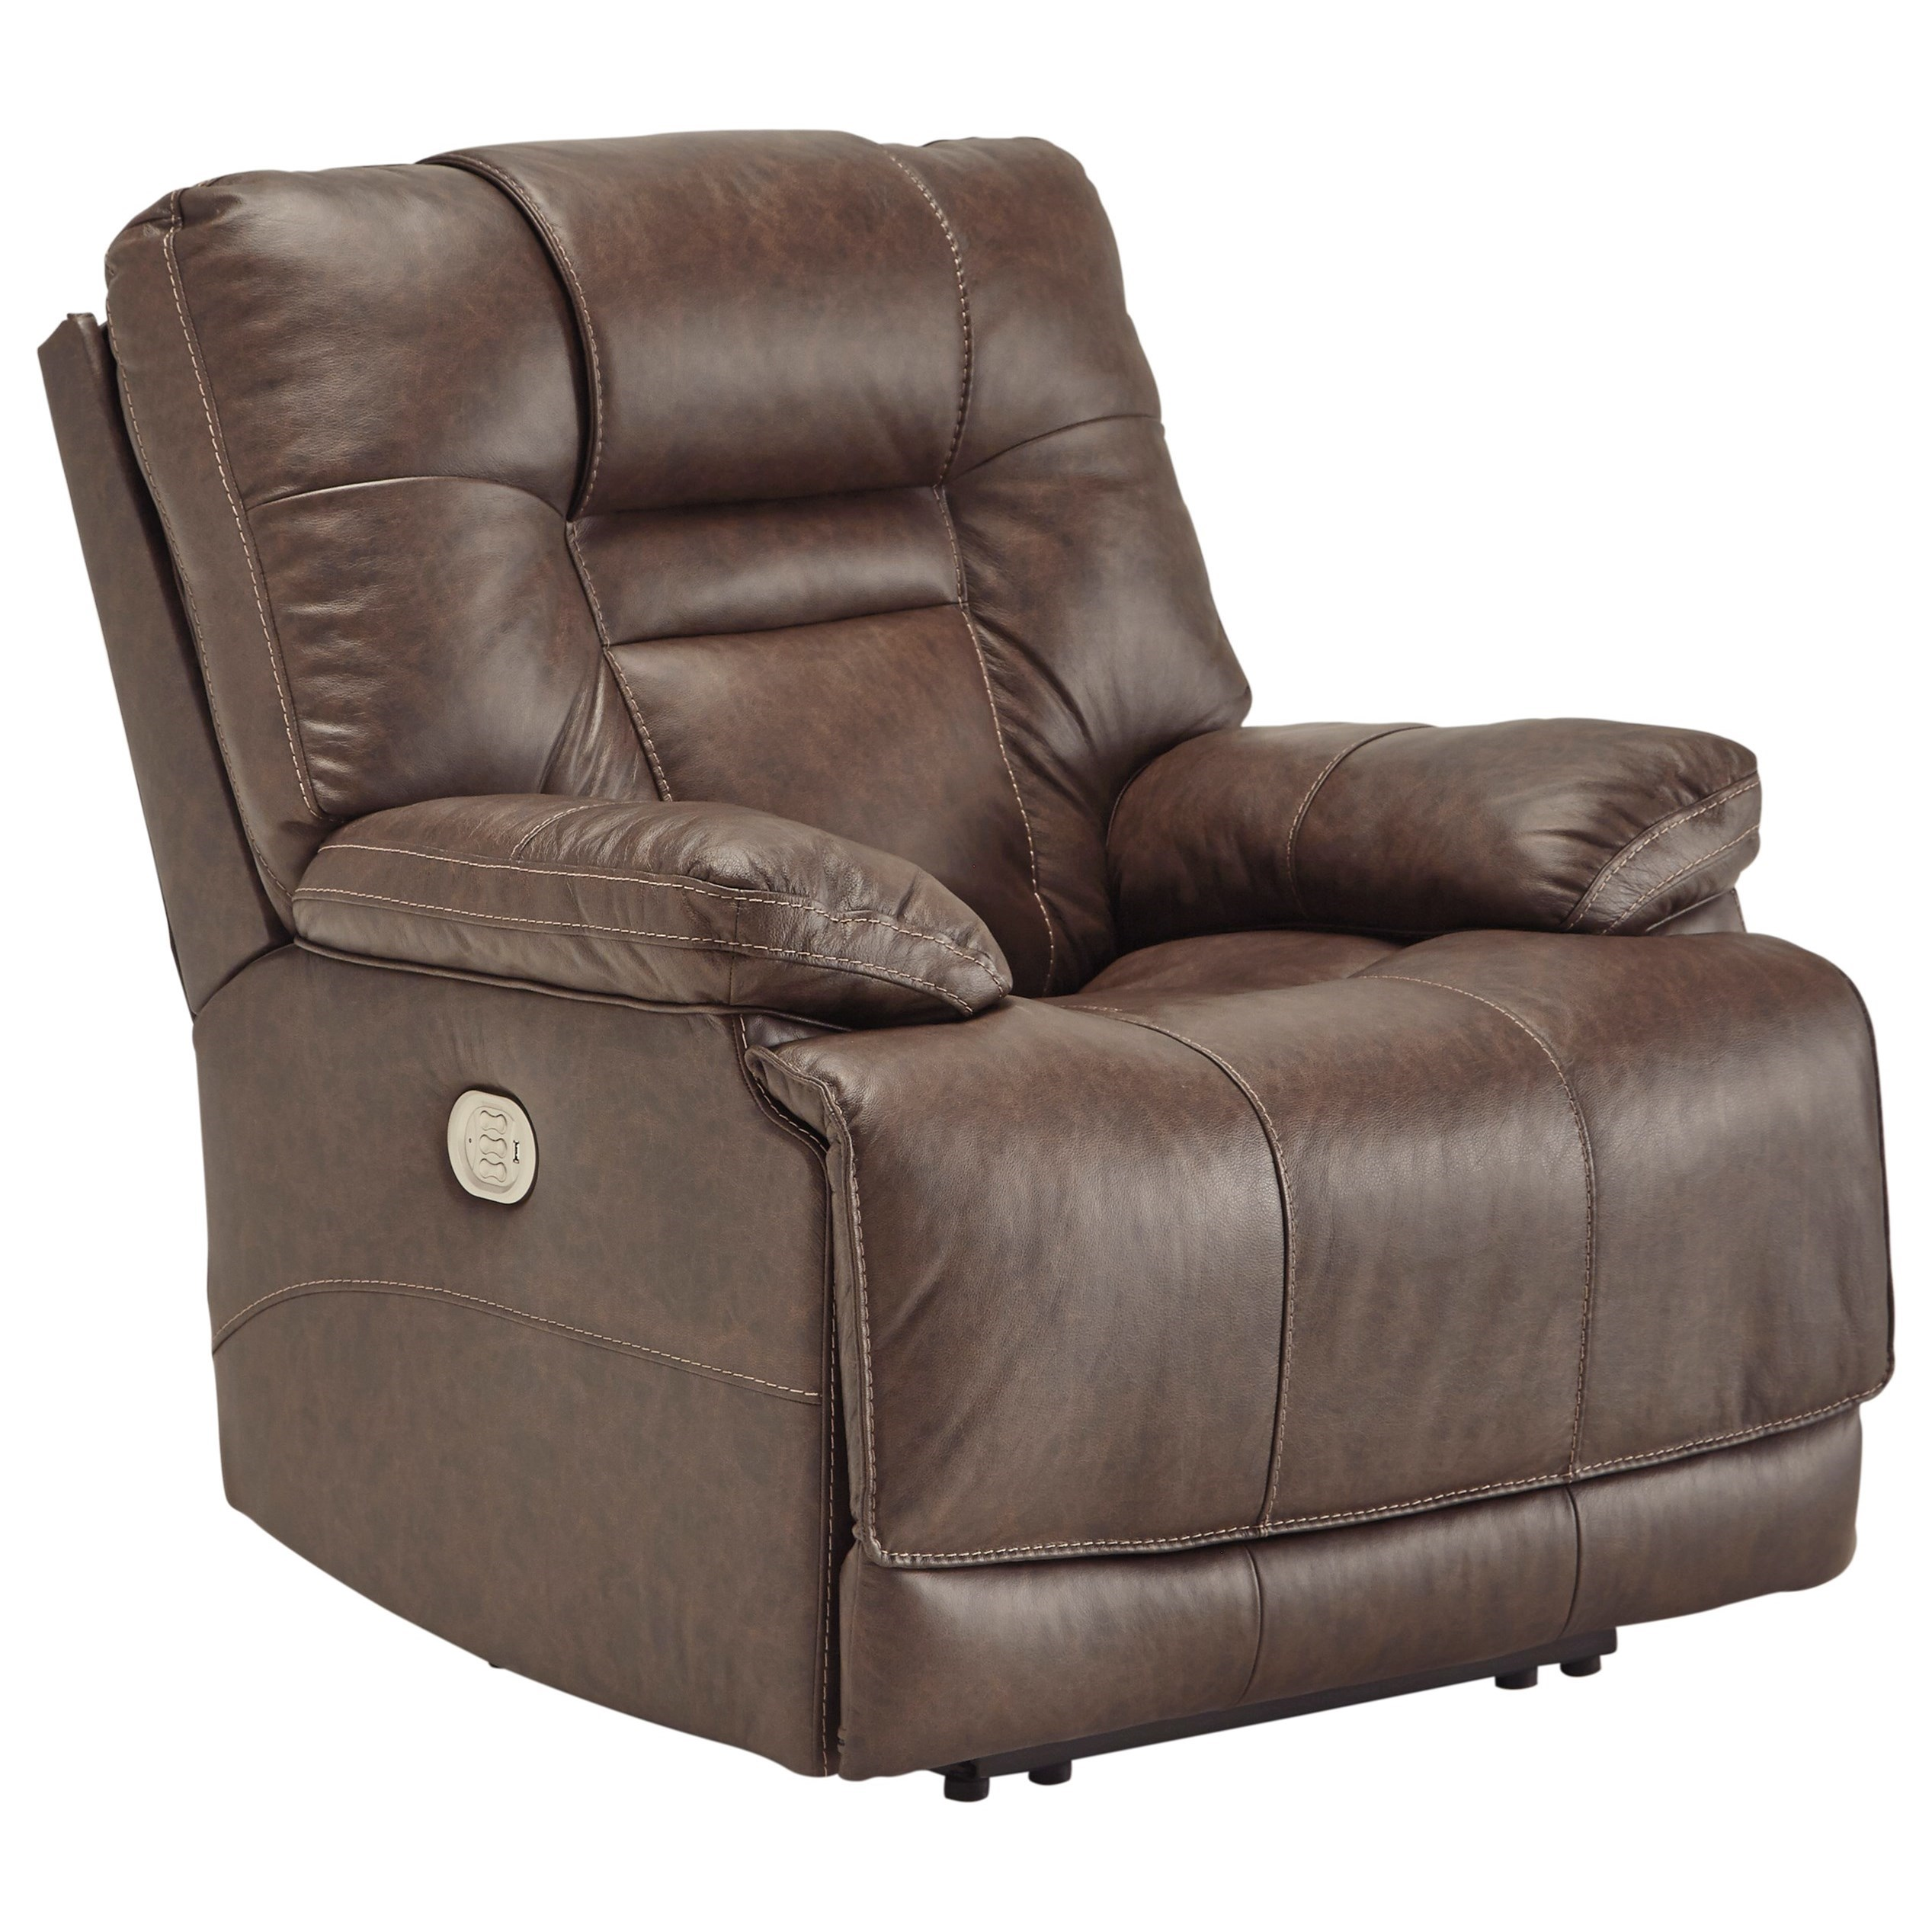 Wurstrow Power Recliner by Signature Design by Ashley at Standard Furniture